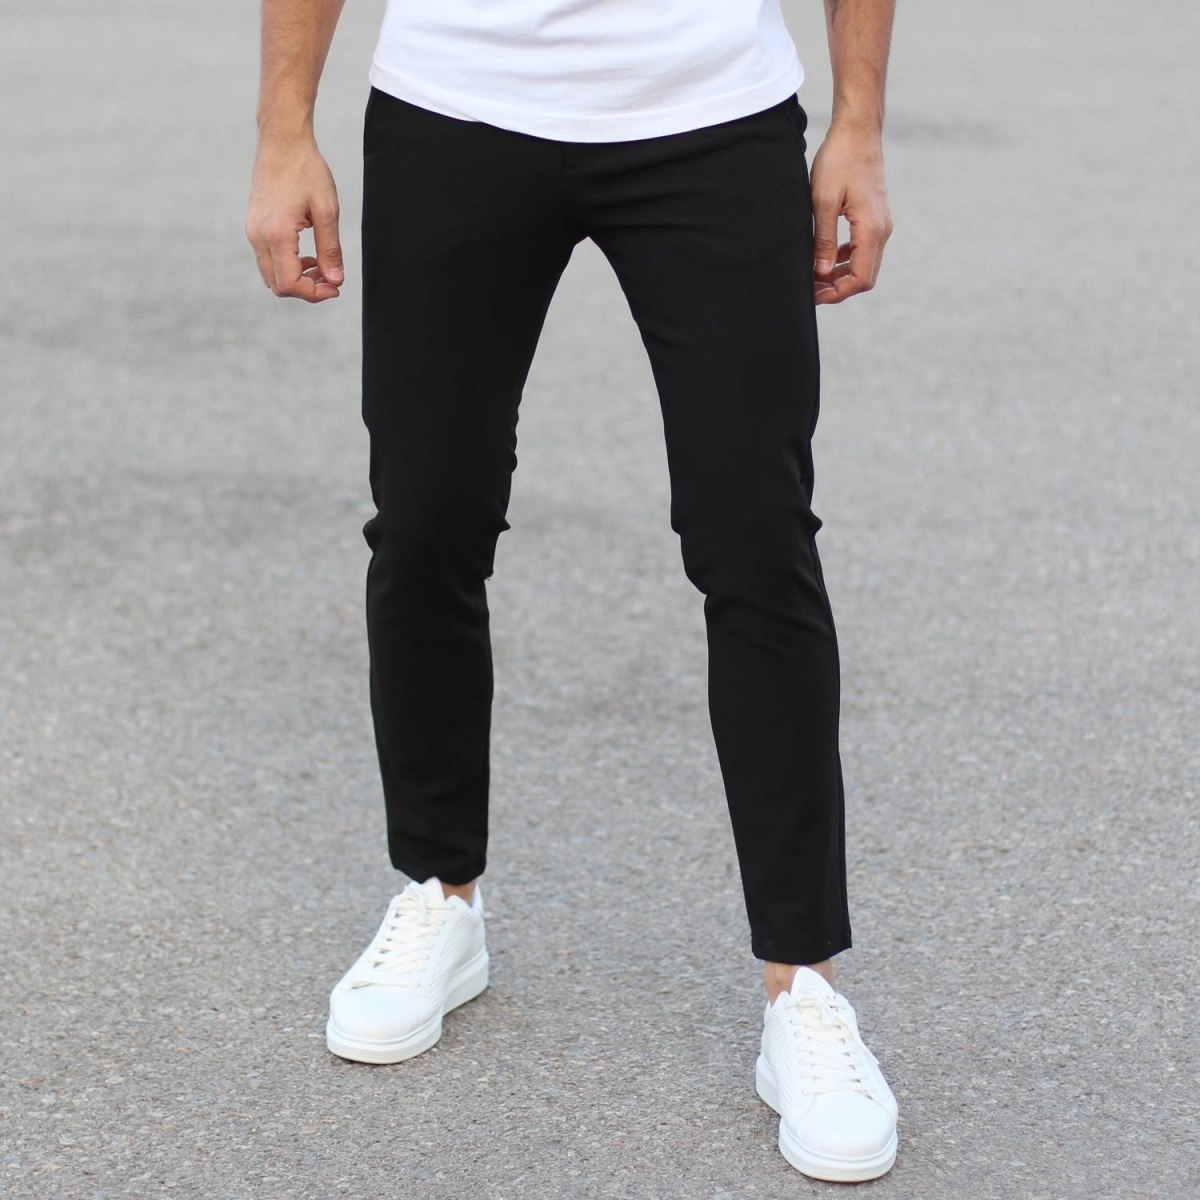 Slim Smart-Wear Pants in Black